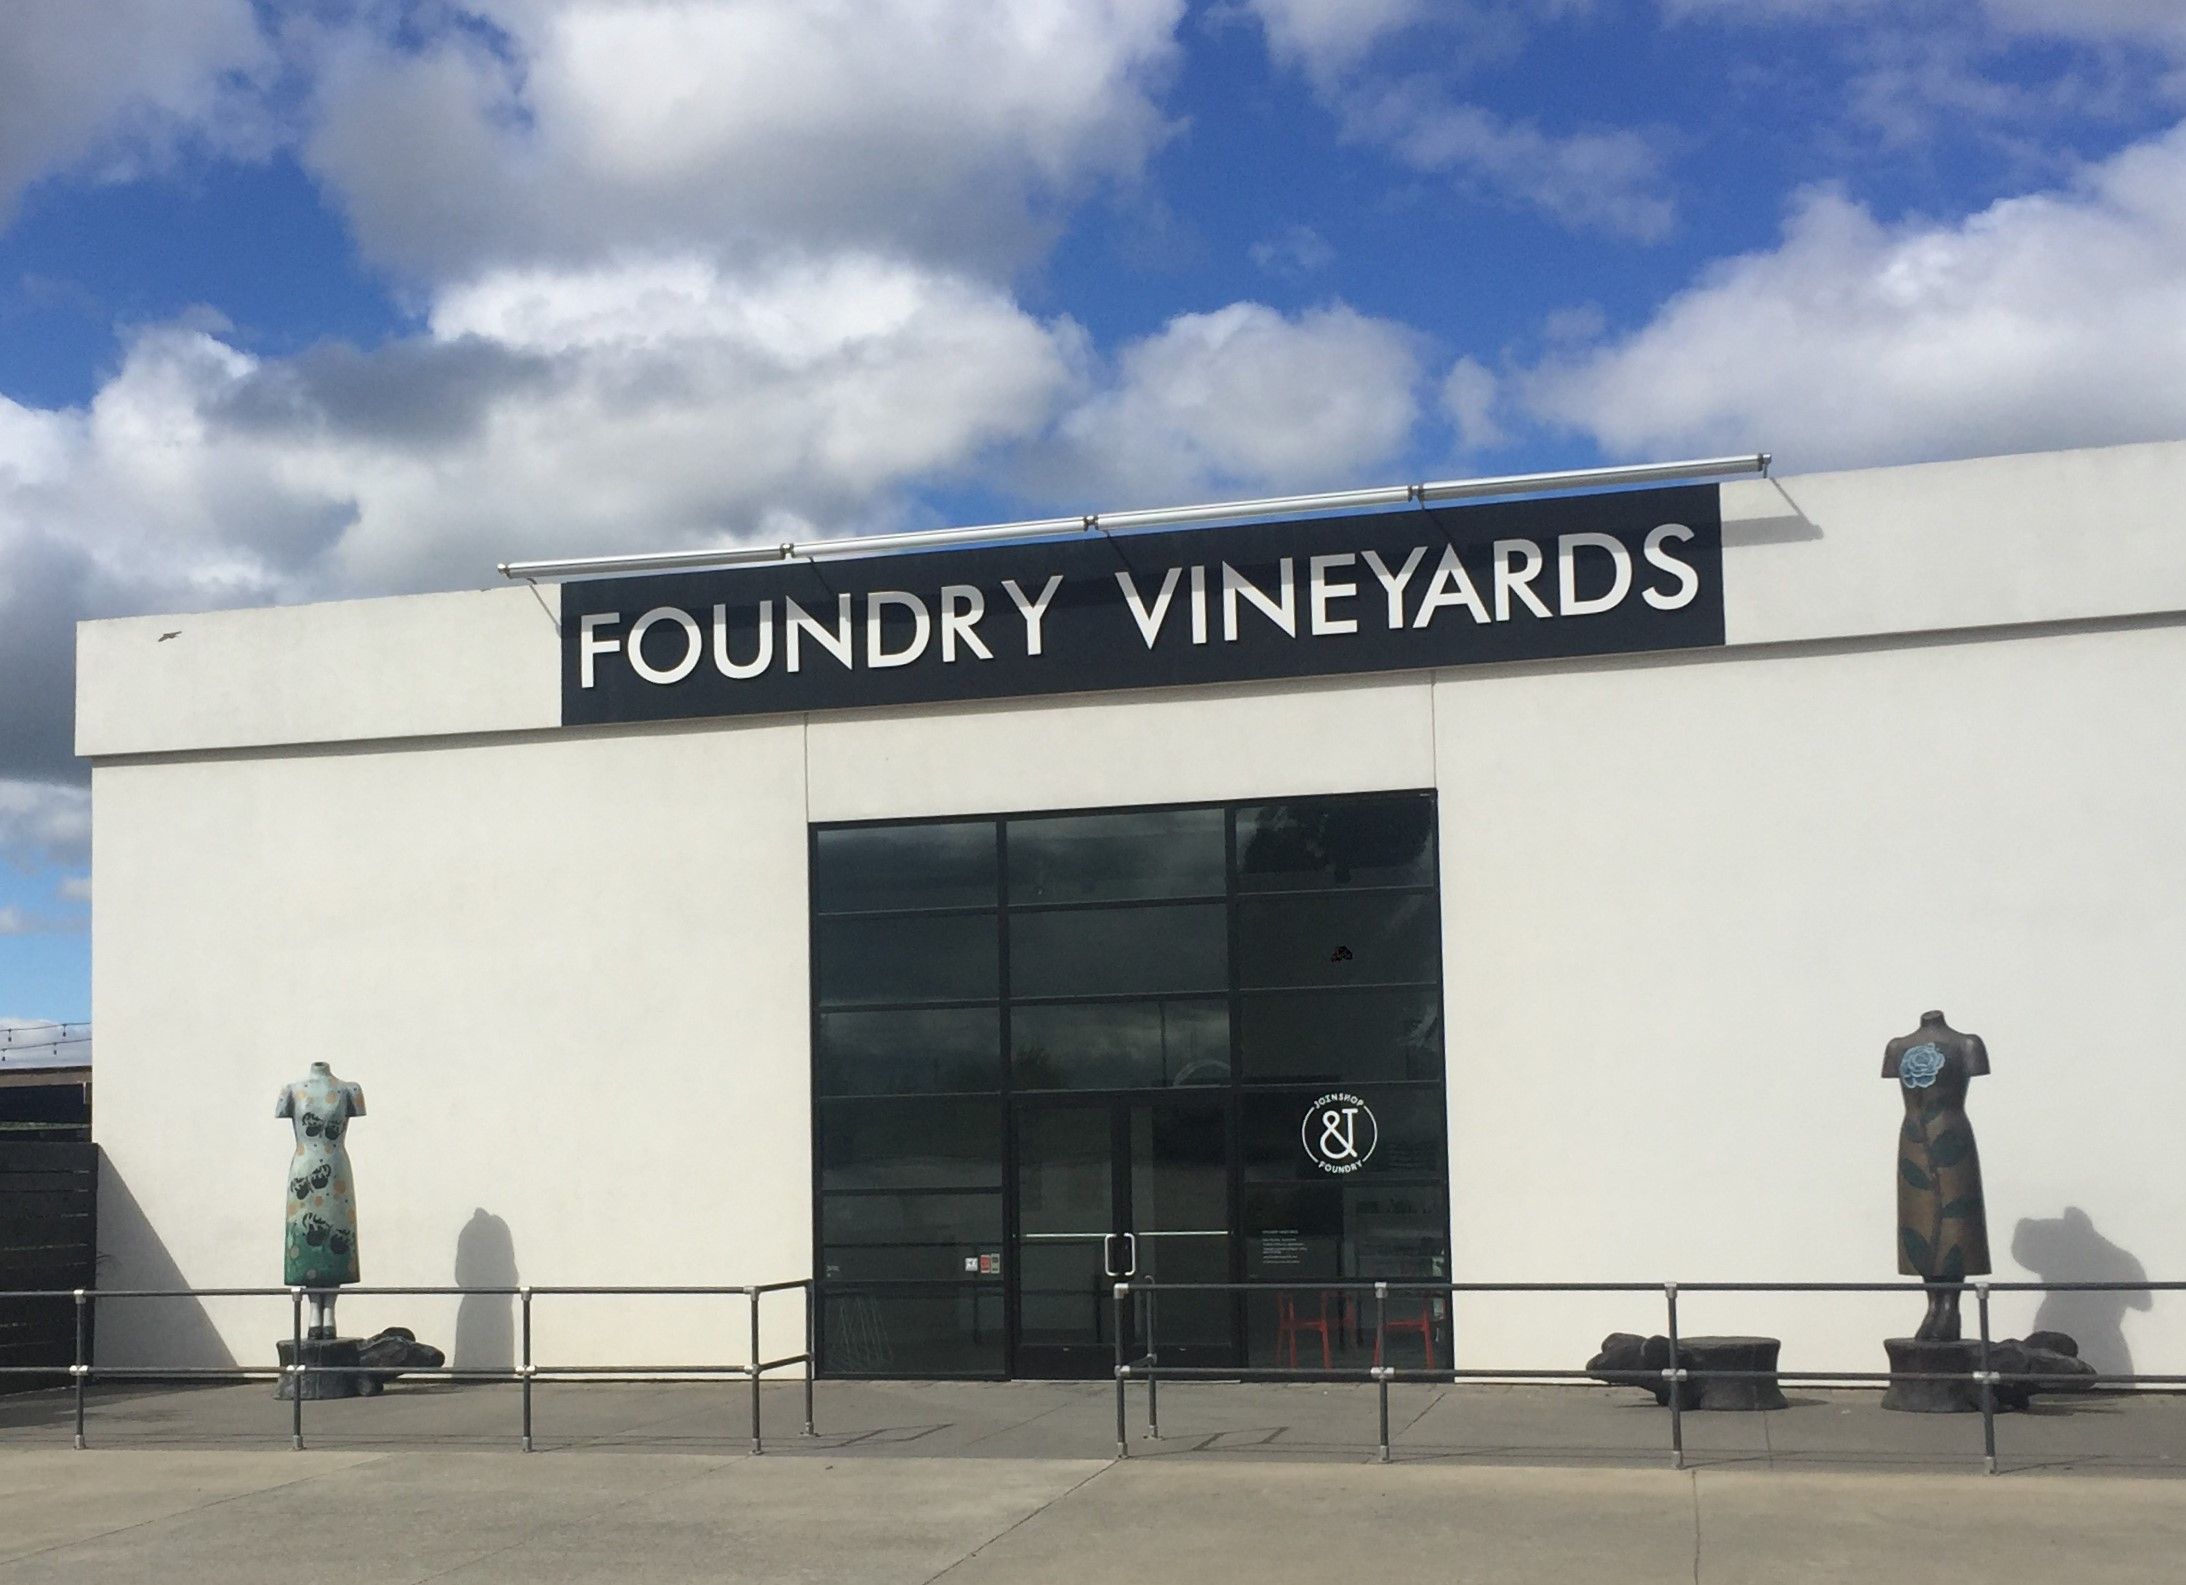 Photo depicts front entrance of Foundry Vineyards winery